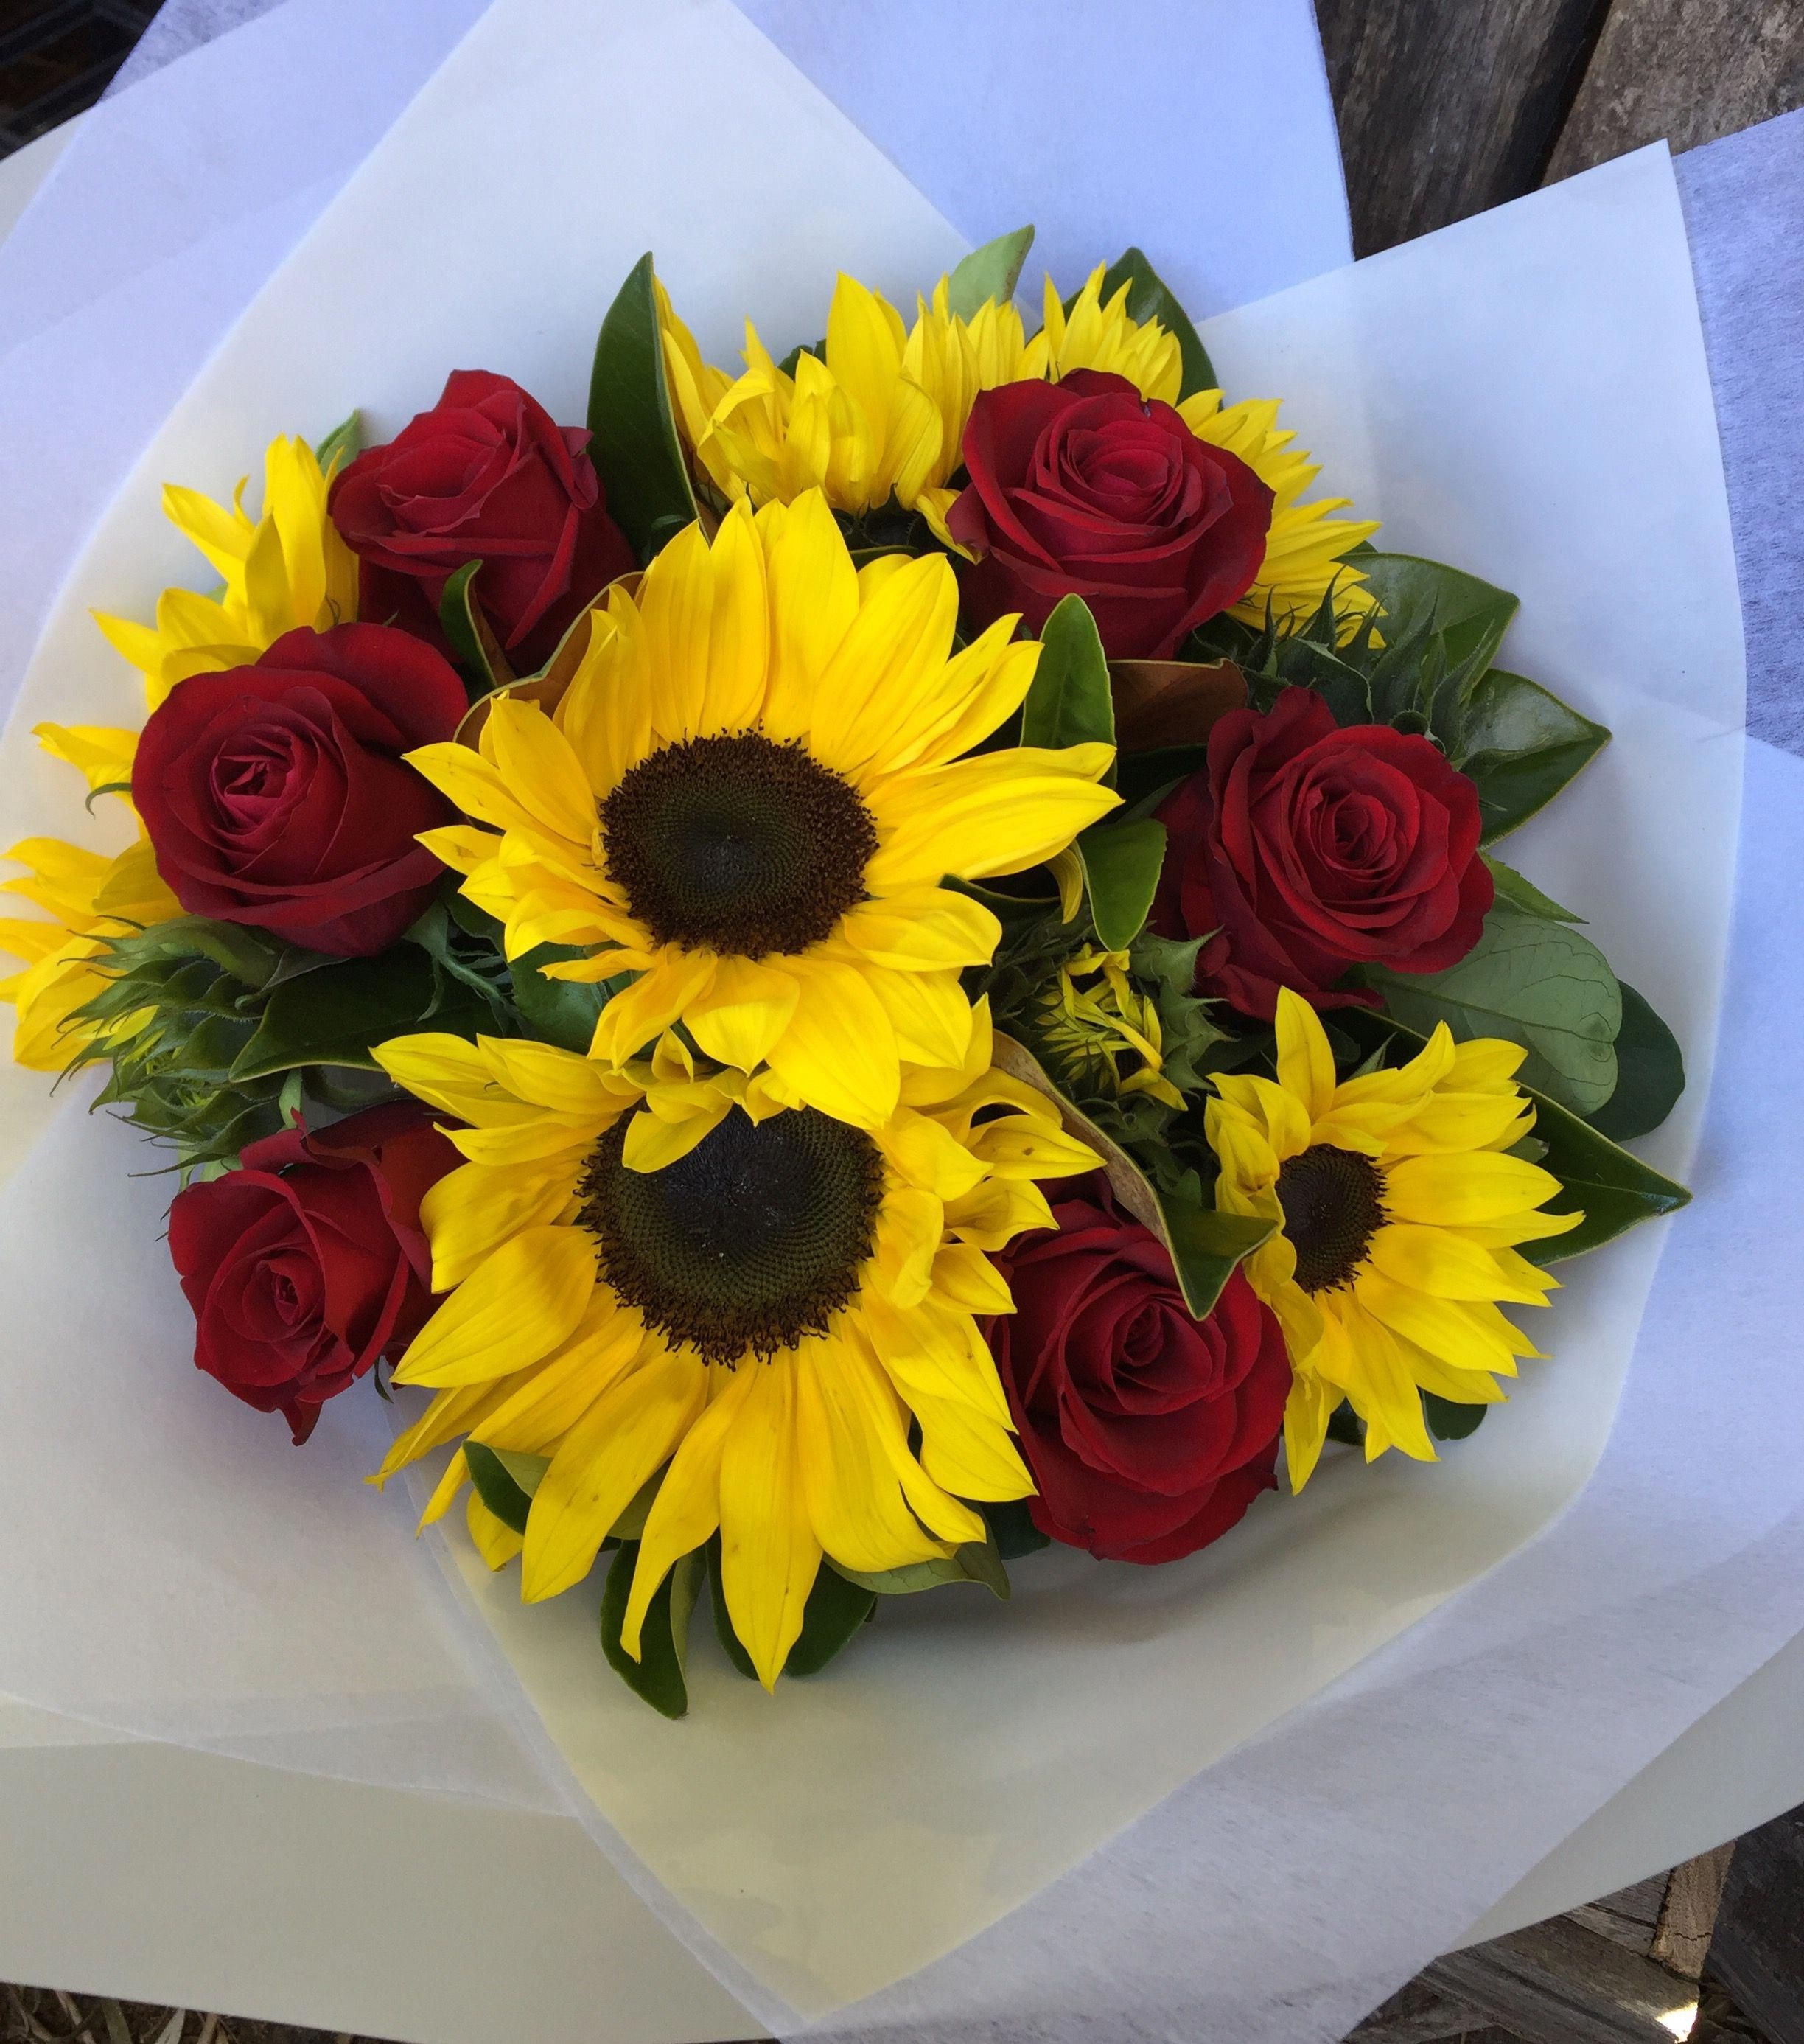 Bouquet Sposa Girasole.The Flower Manor Sunflowers And Red Rose Hand Held Bouquet Fiori